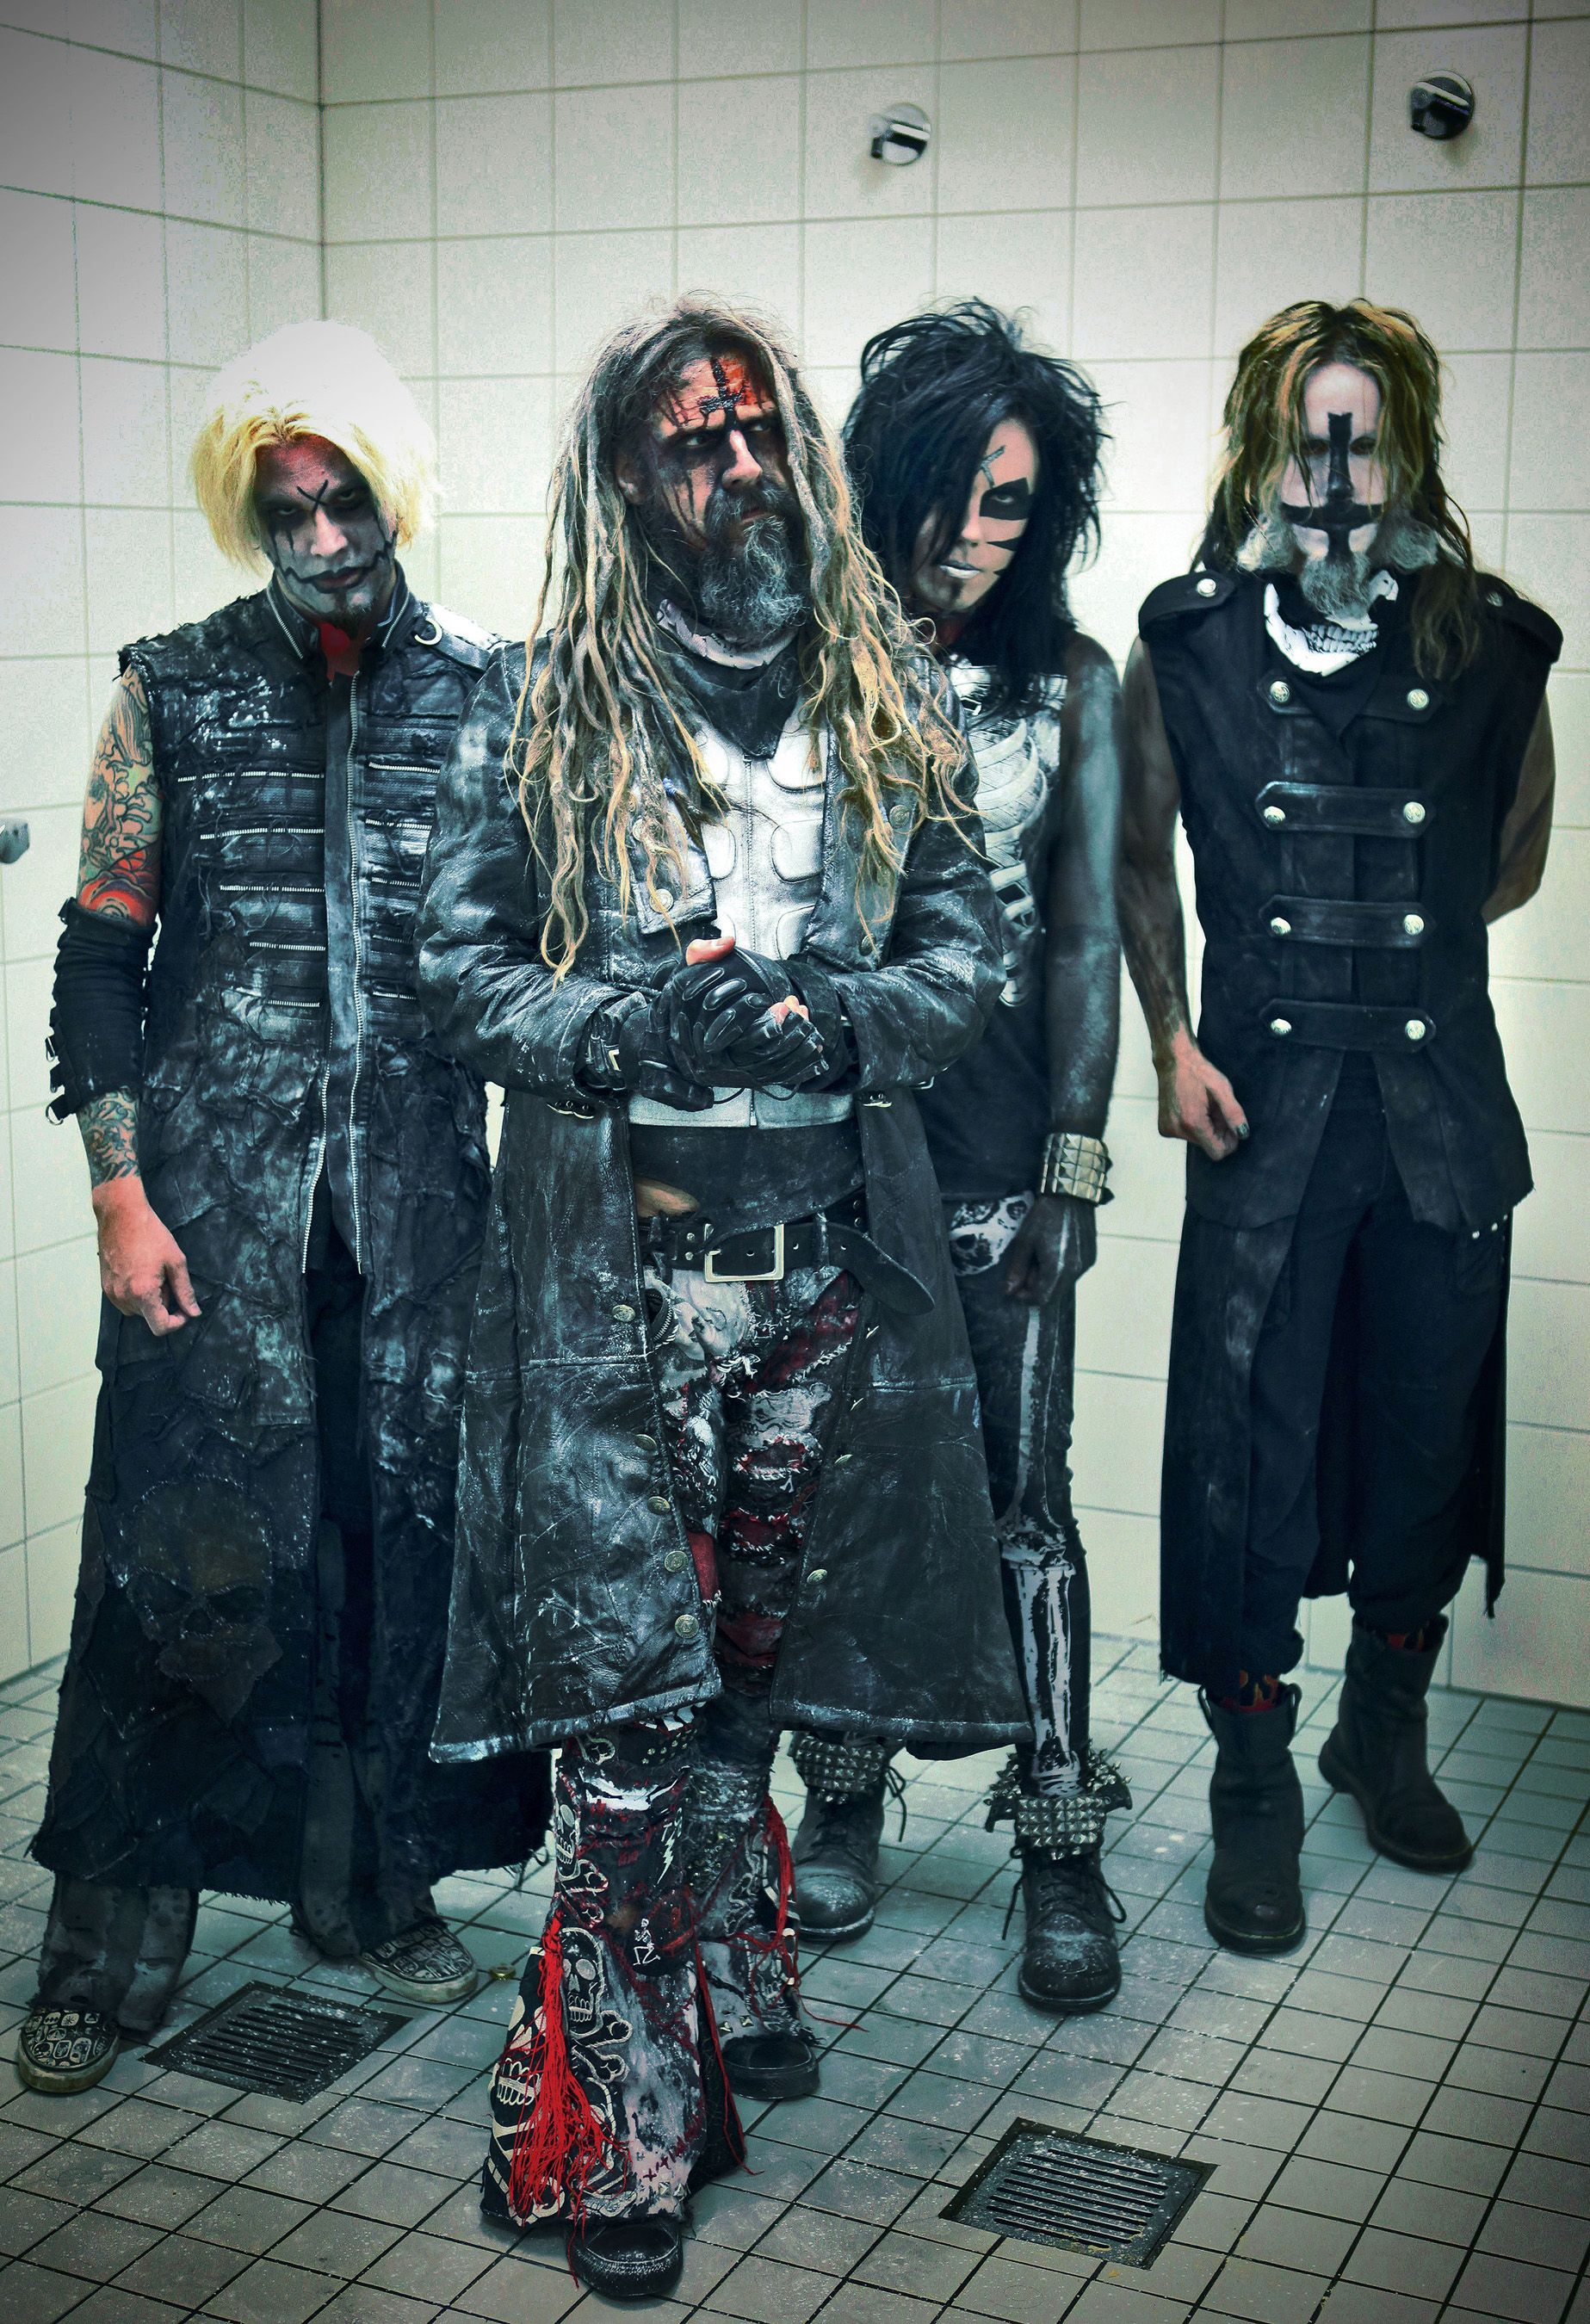 Rob Zombie and band, including John 5